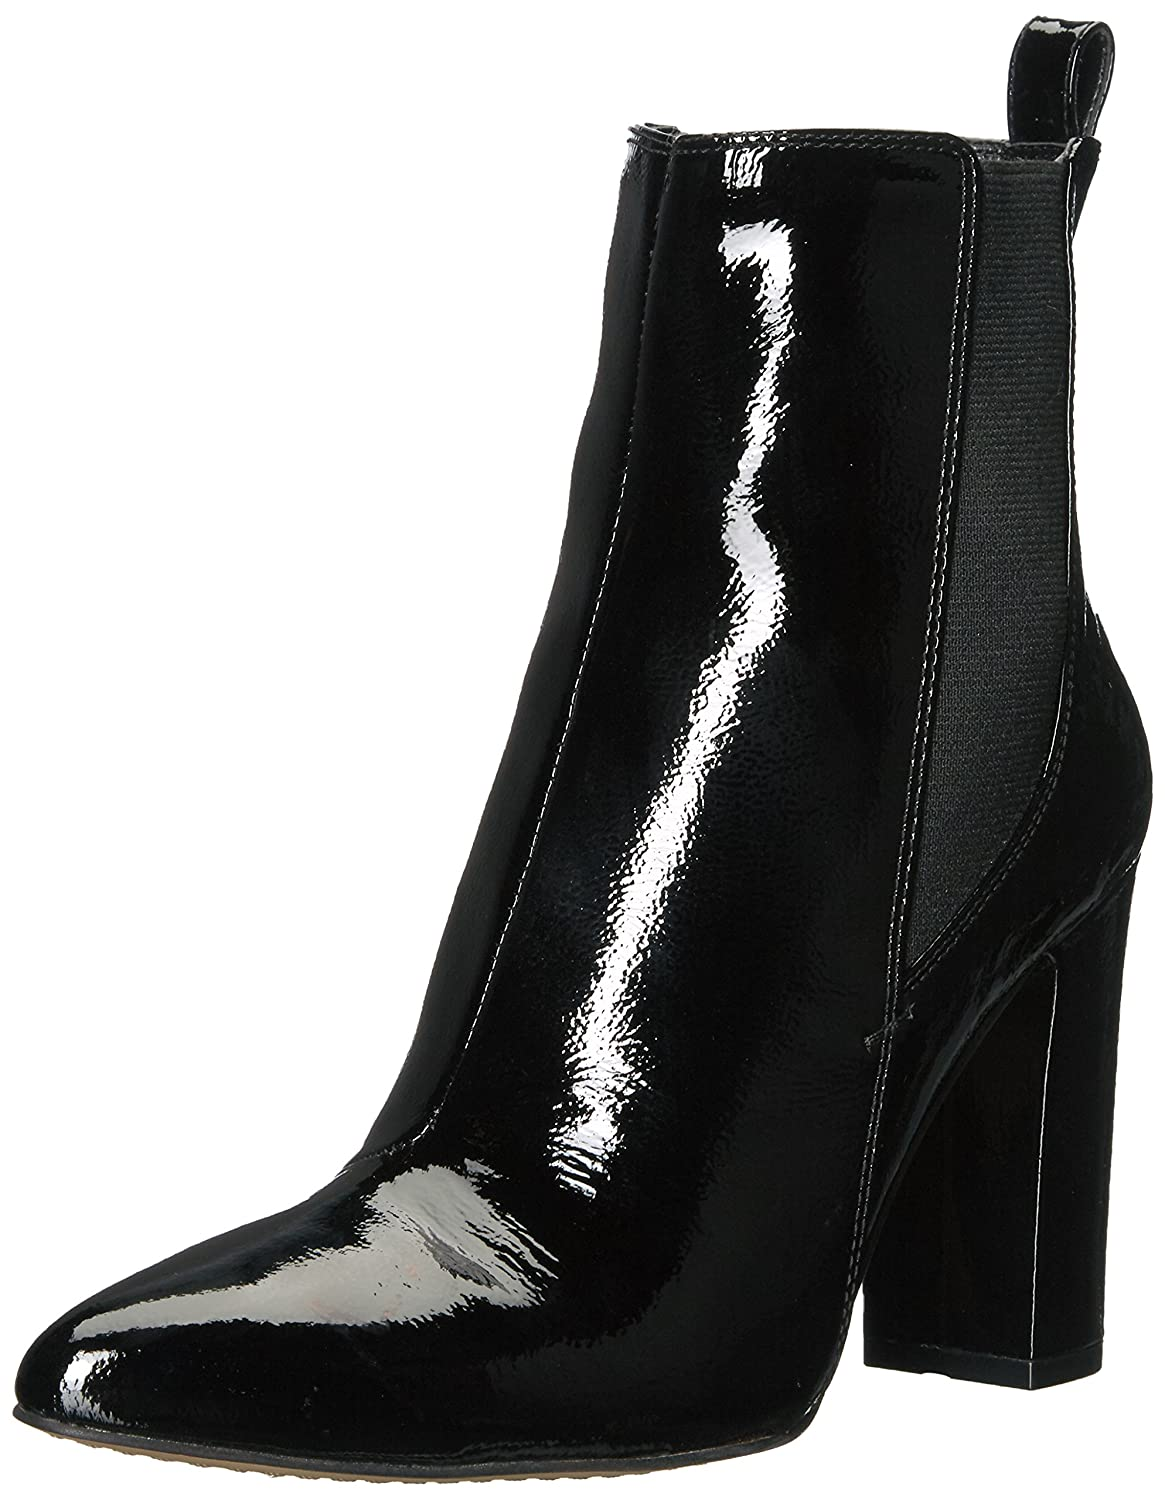 Vince Camuto Women's Britsy Ankle Boot B071SDK98G 5 B(M) US|Carbone